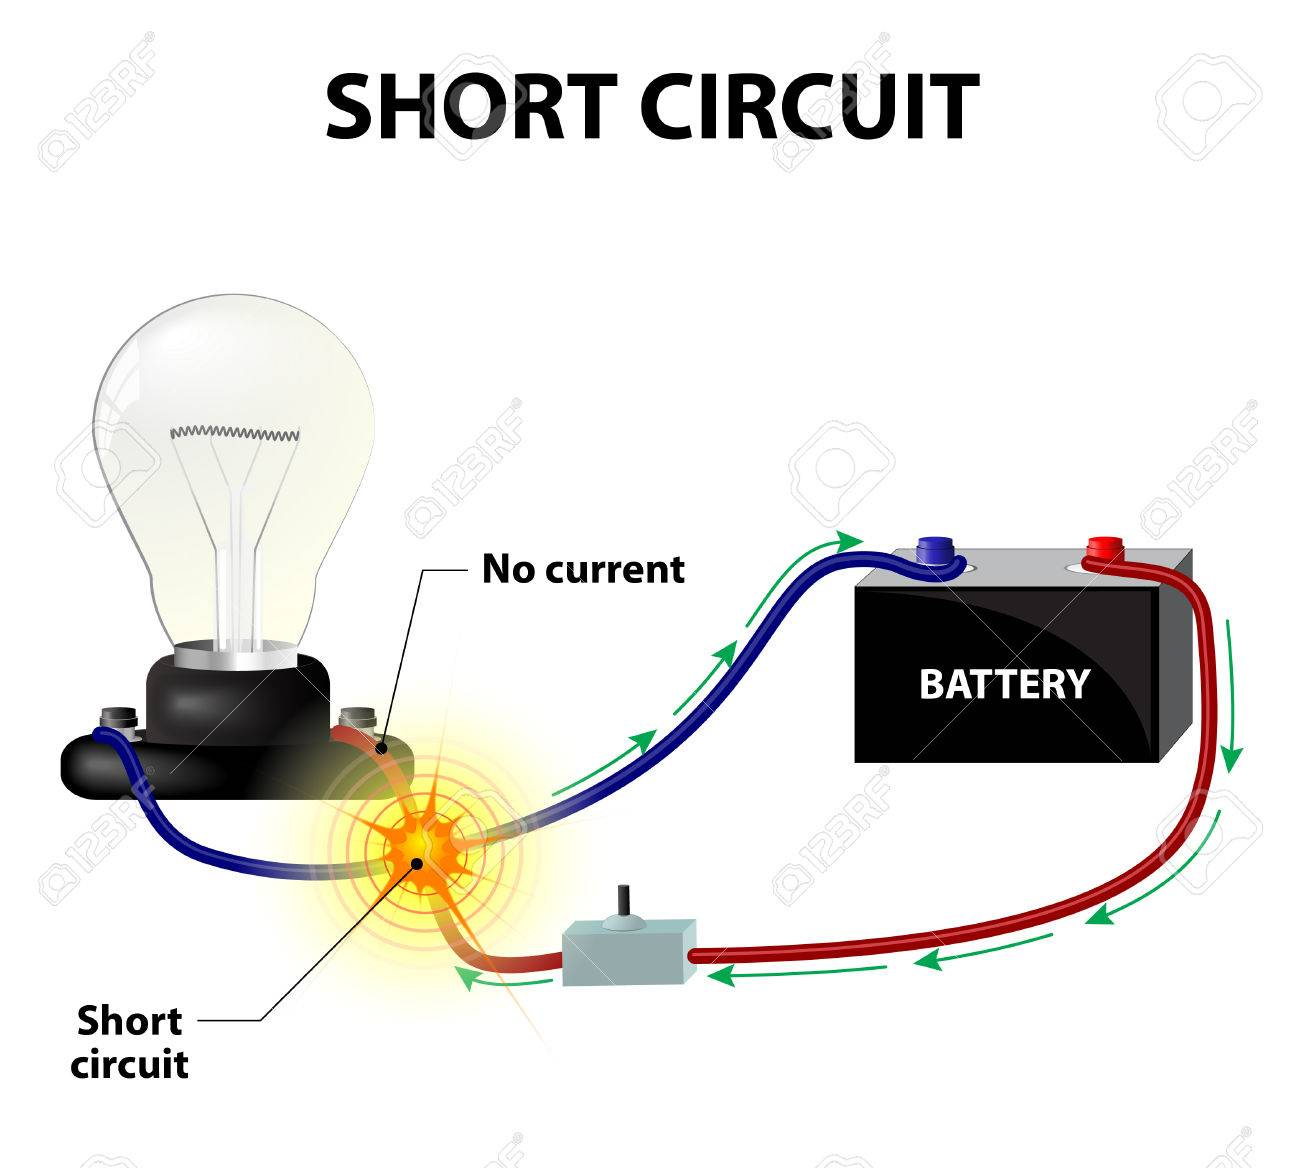 wiring short circuit electrical wiring diagram house u2022 rh universalservices co electrical short circuit in heart electrical short circuit definition